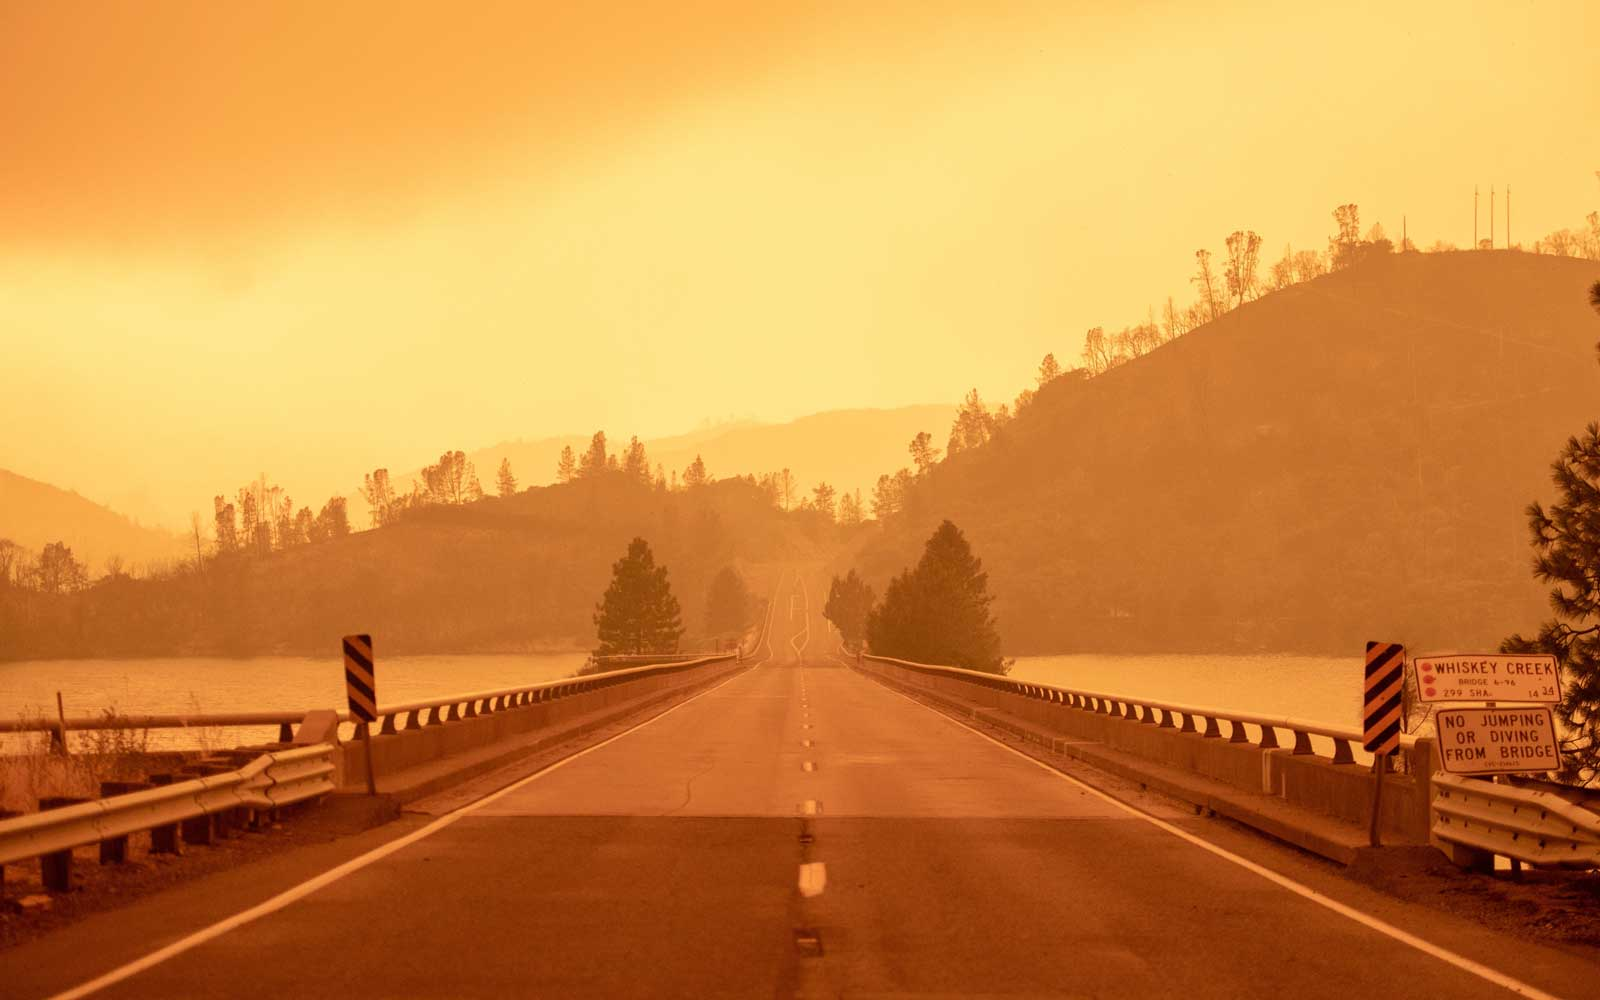 The sky turns a deep orange as smoke fills the area during the Carr fire near Whiskeytown, California on July 27, 2018